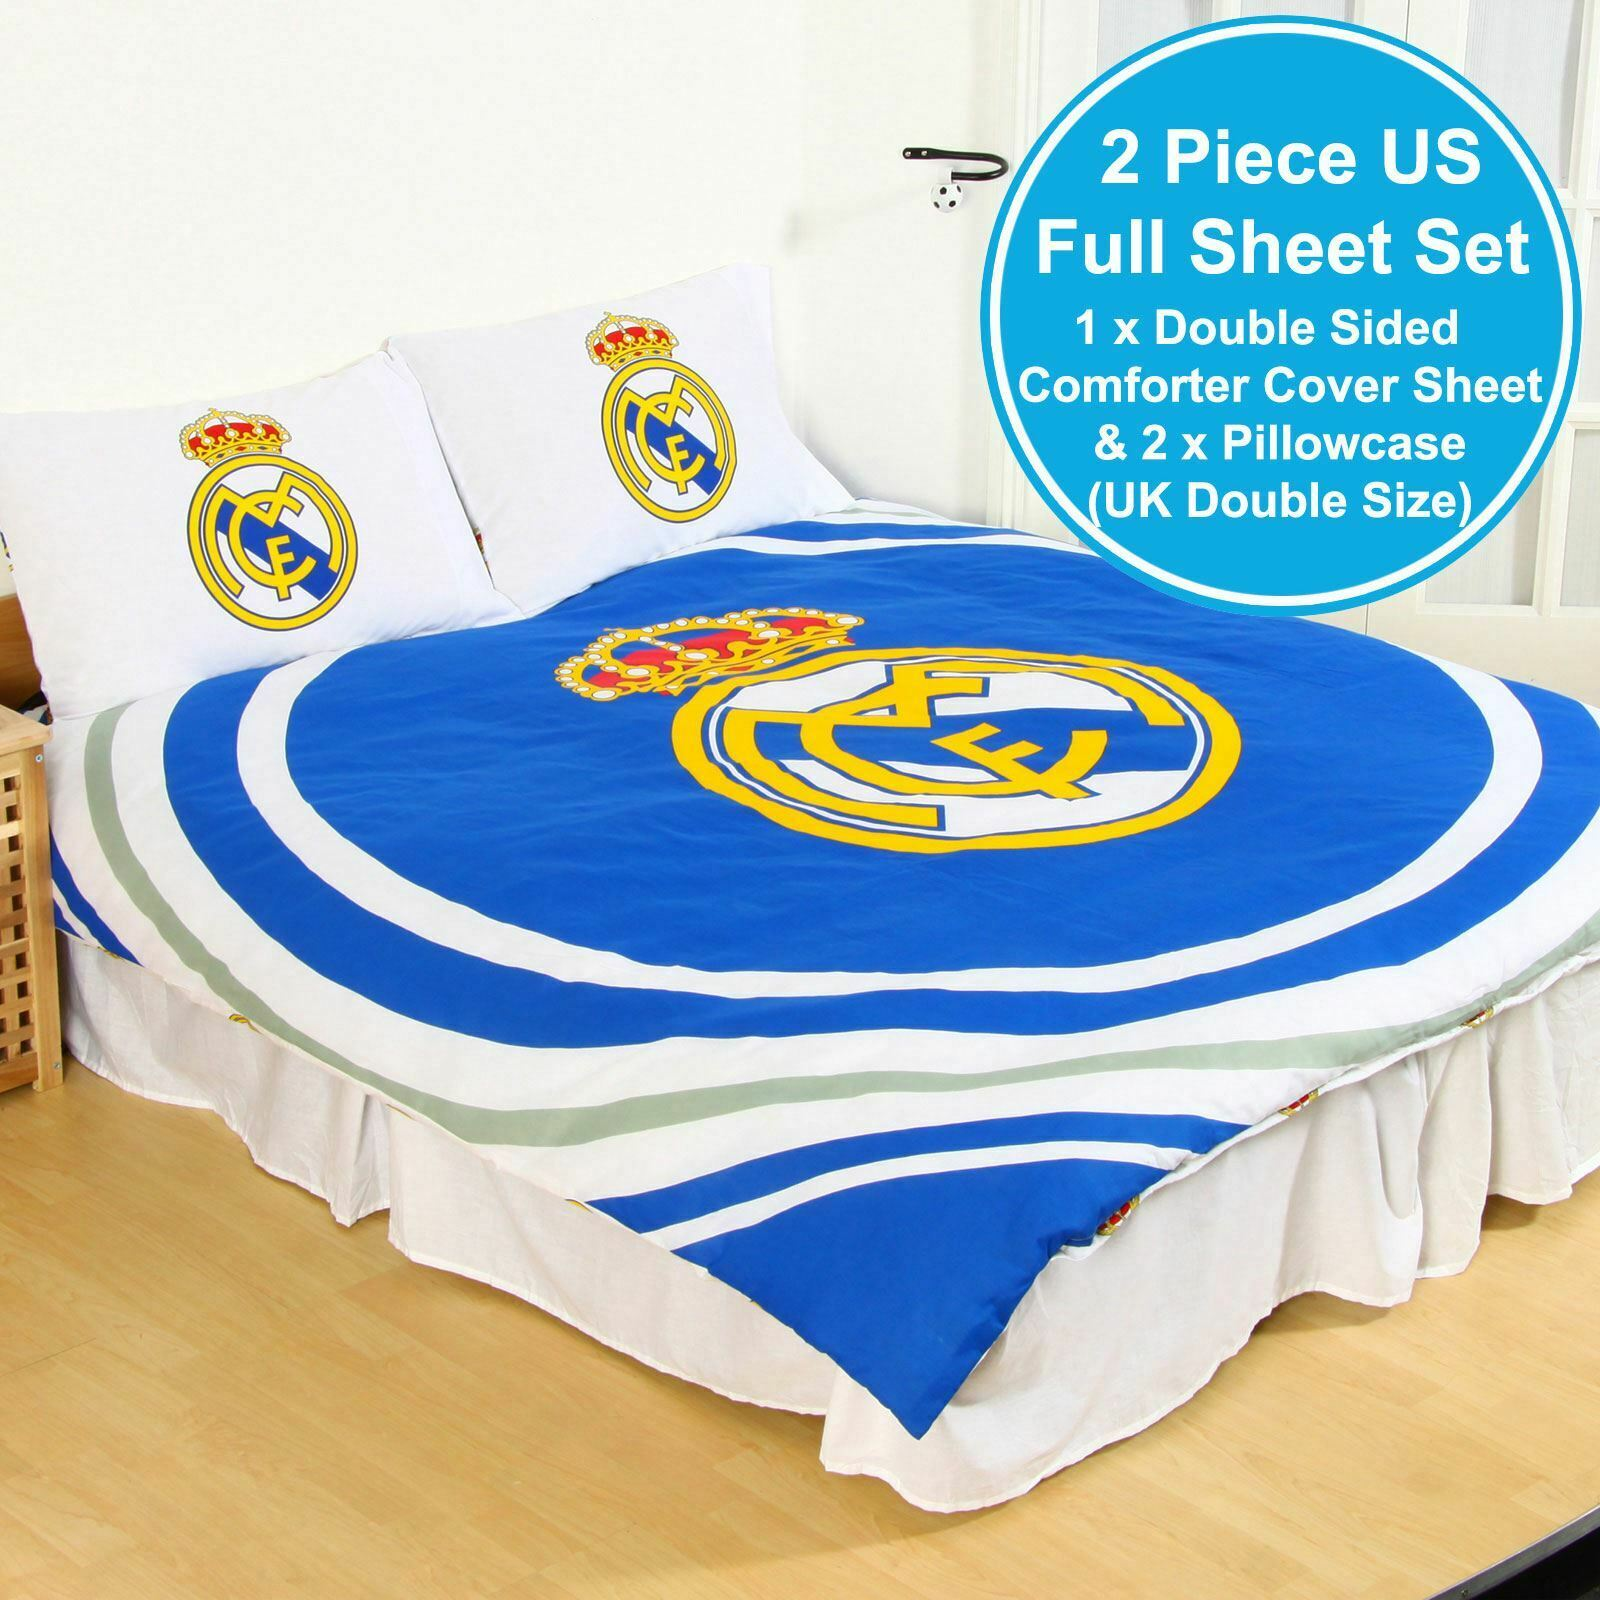 REAL MADRID CF UK DOUBLE   US FULL UNFILLED DUVET COVER & PILLOWCASE SET